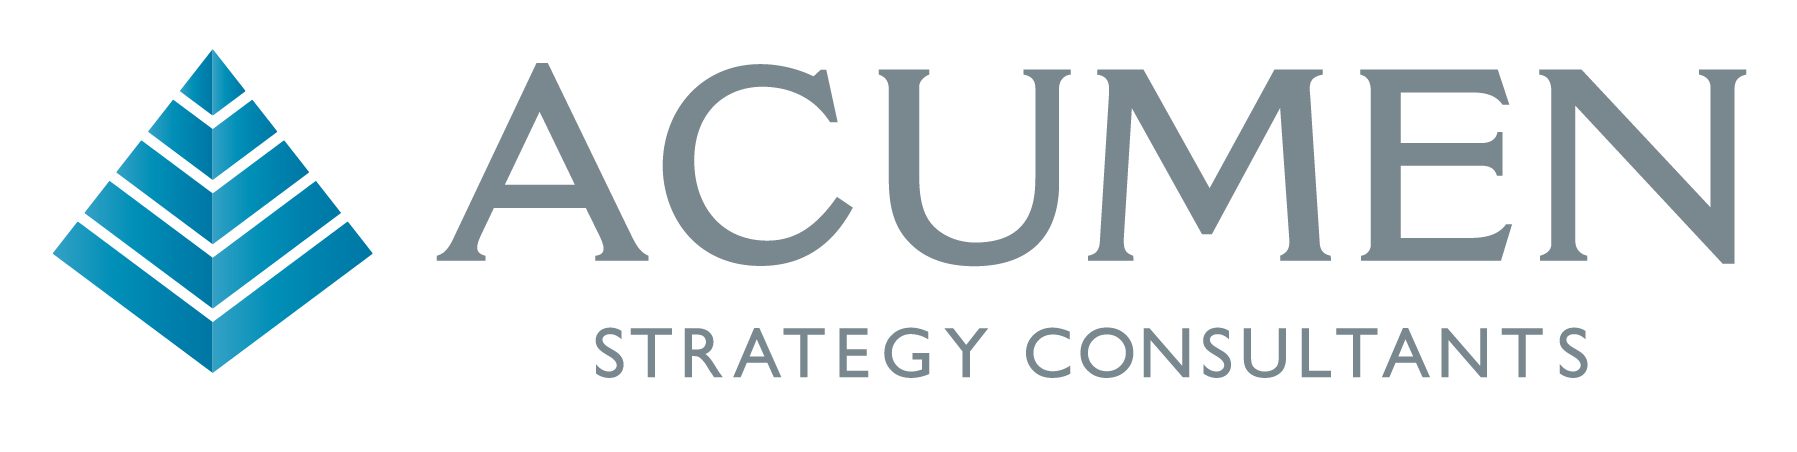 Acumen Strategy Consultants